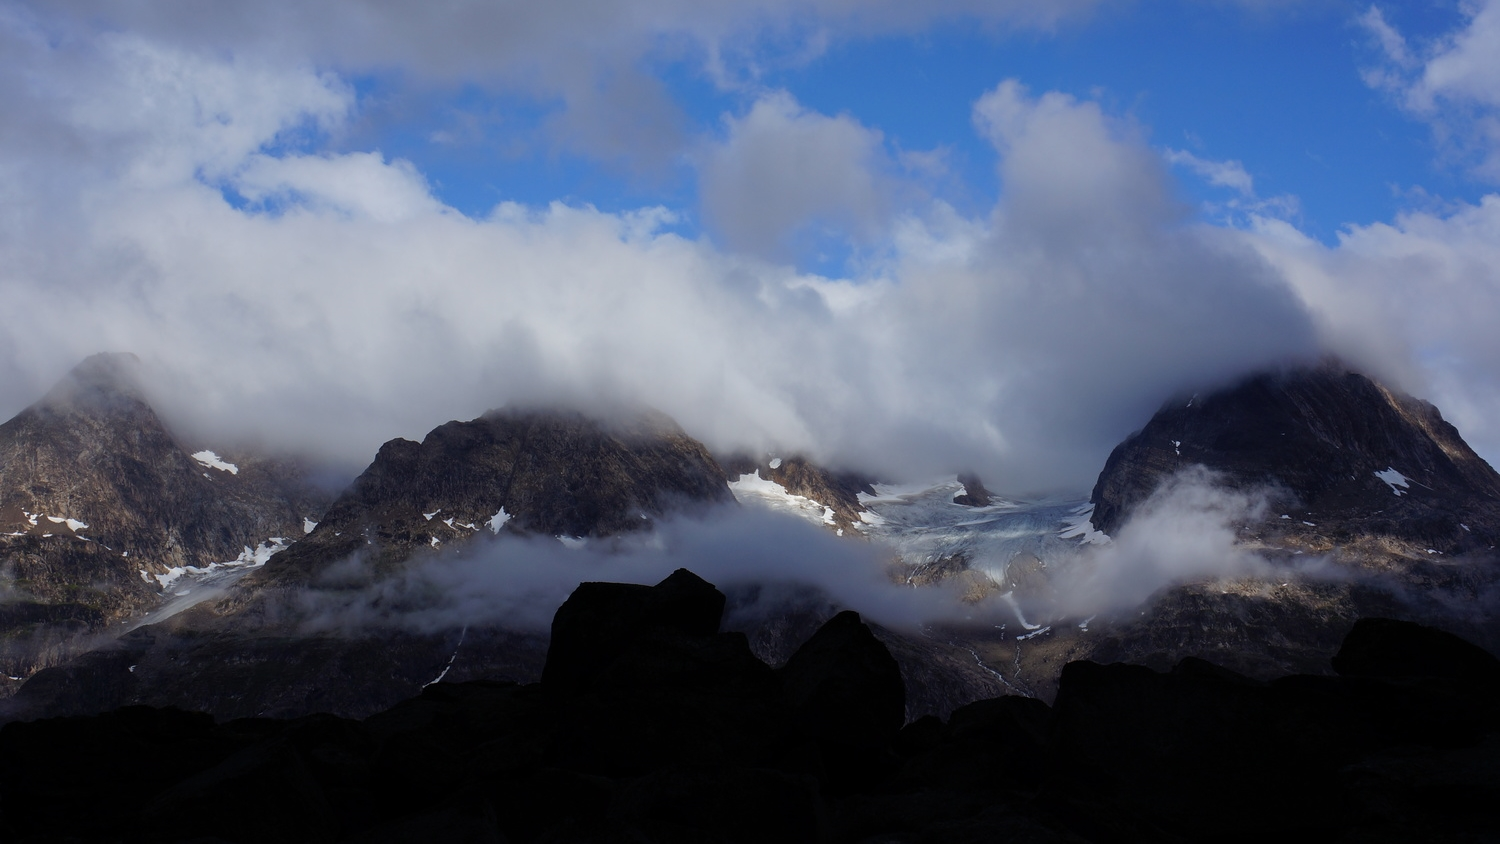 The view from camp in Greenland